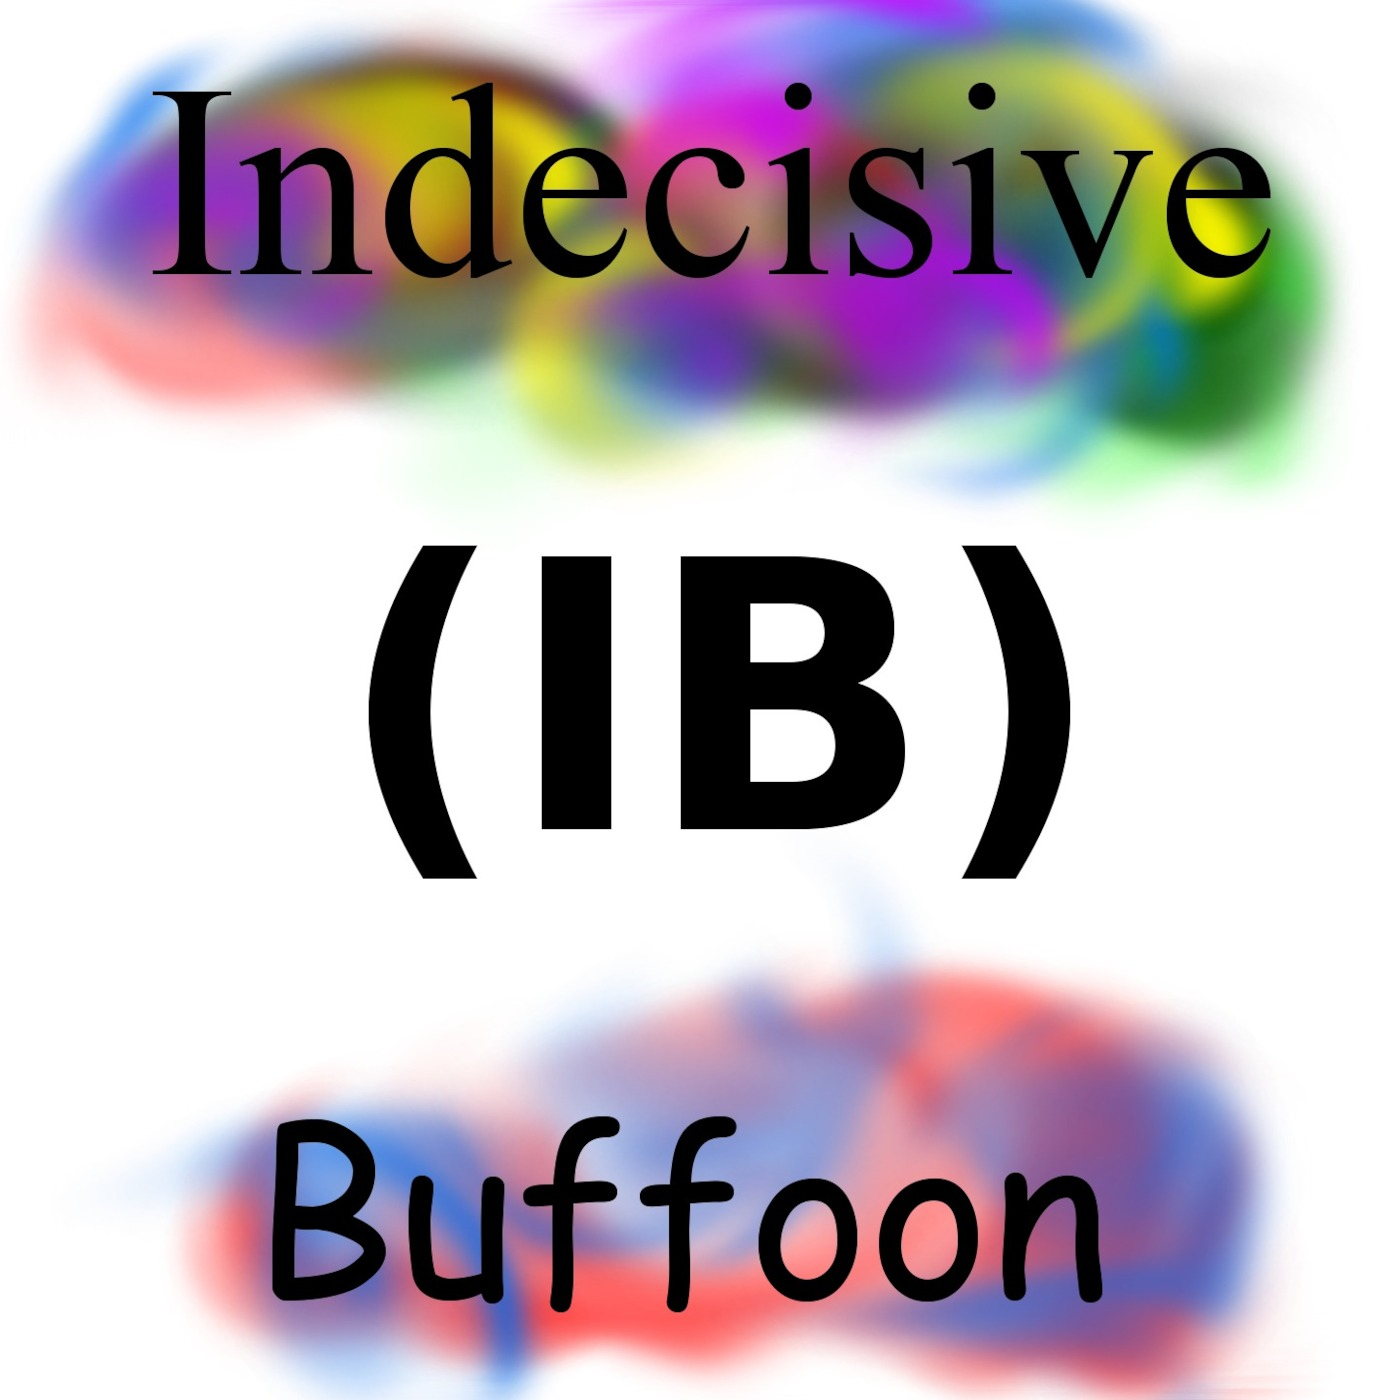 Indecisive Buffoon